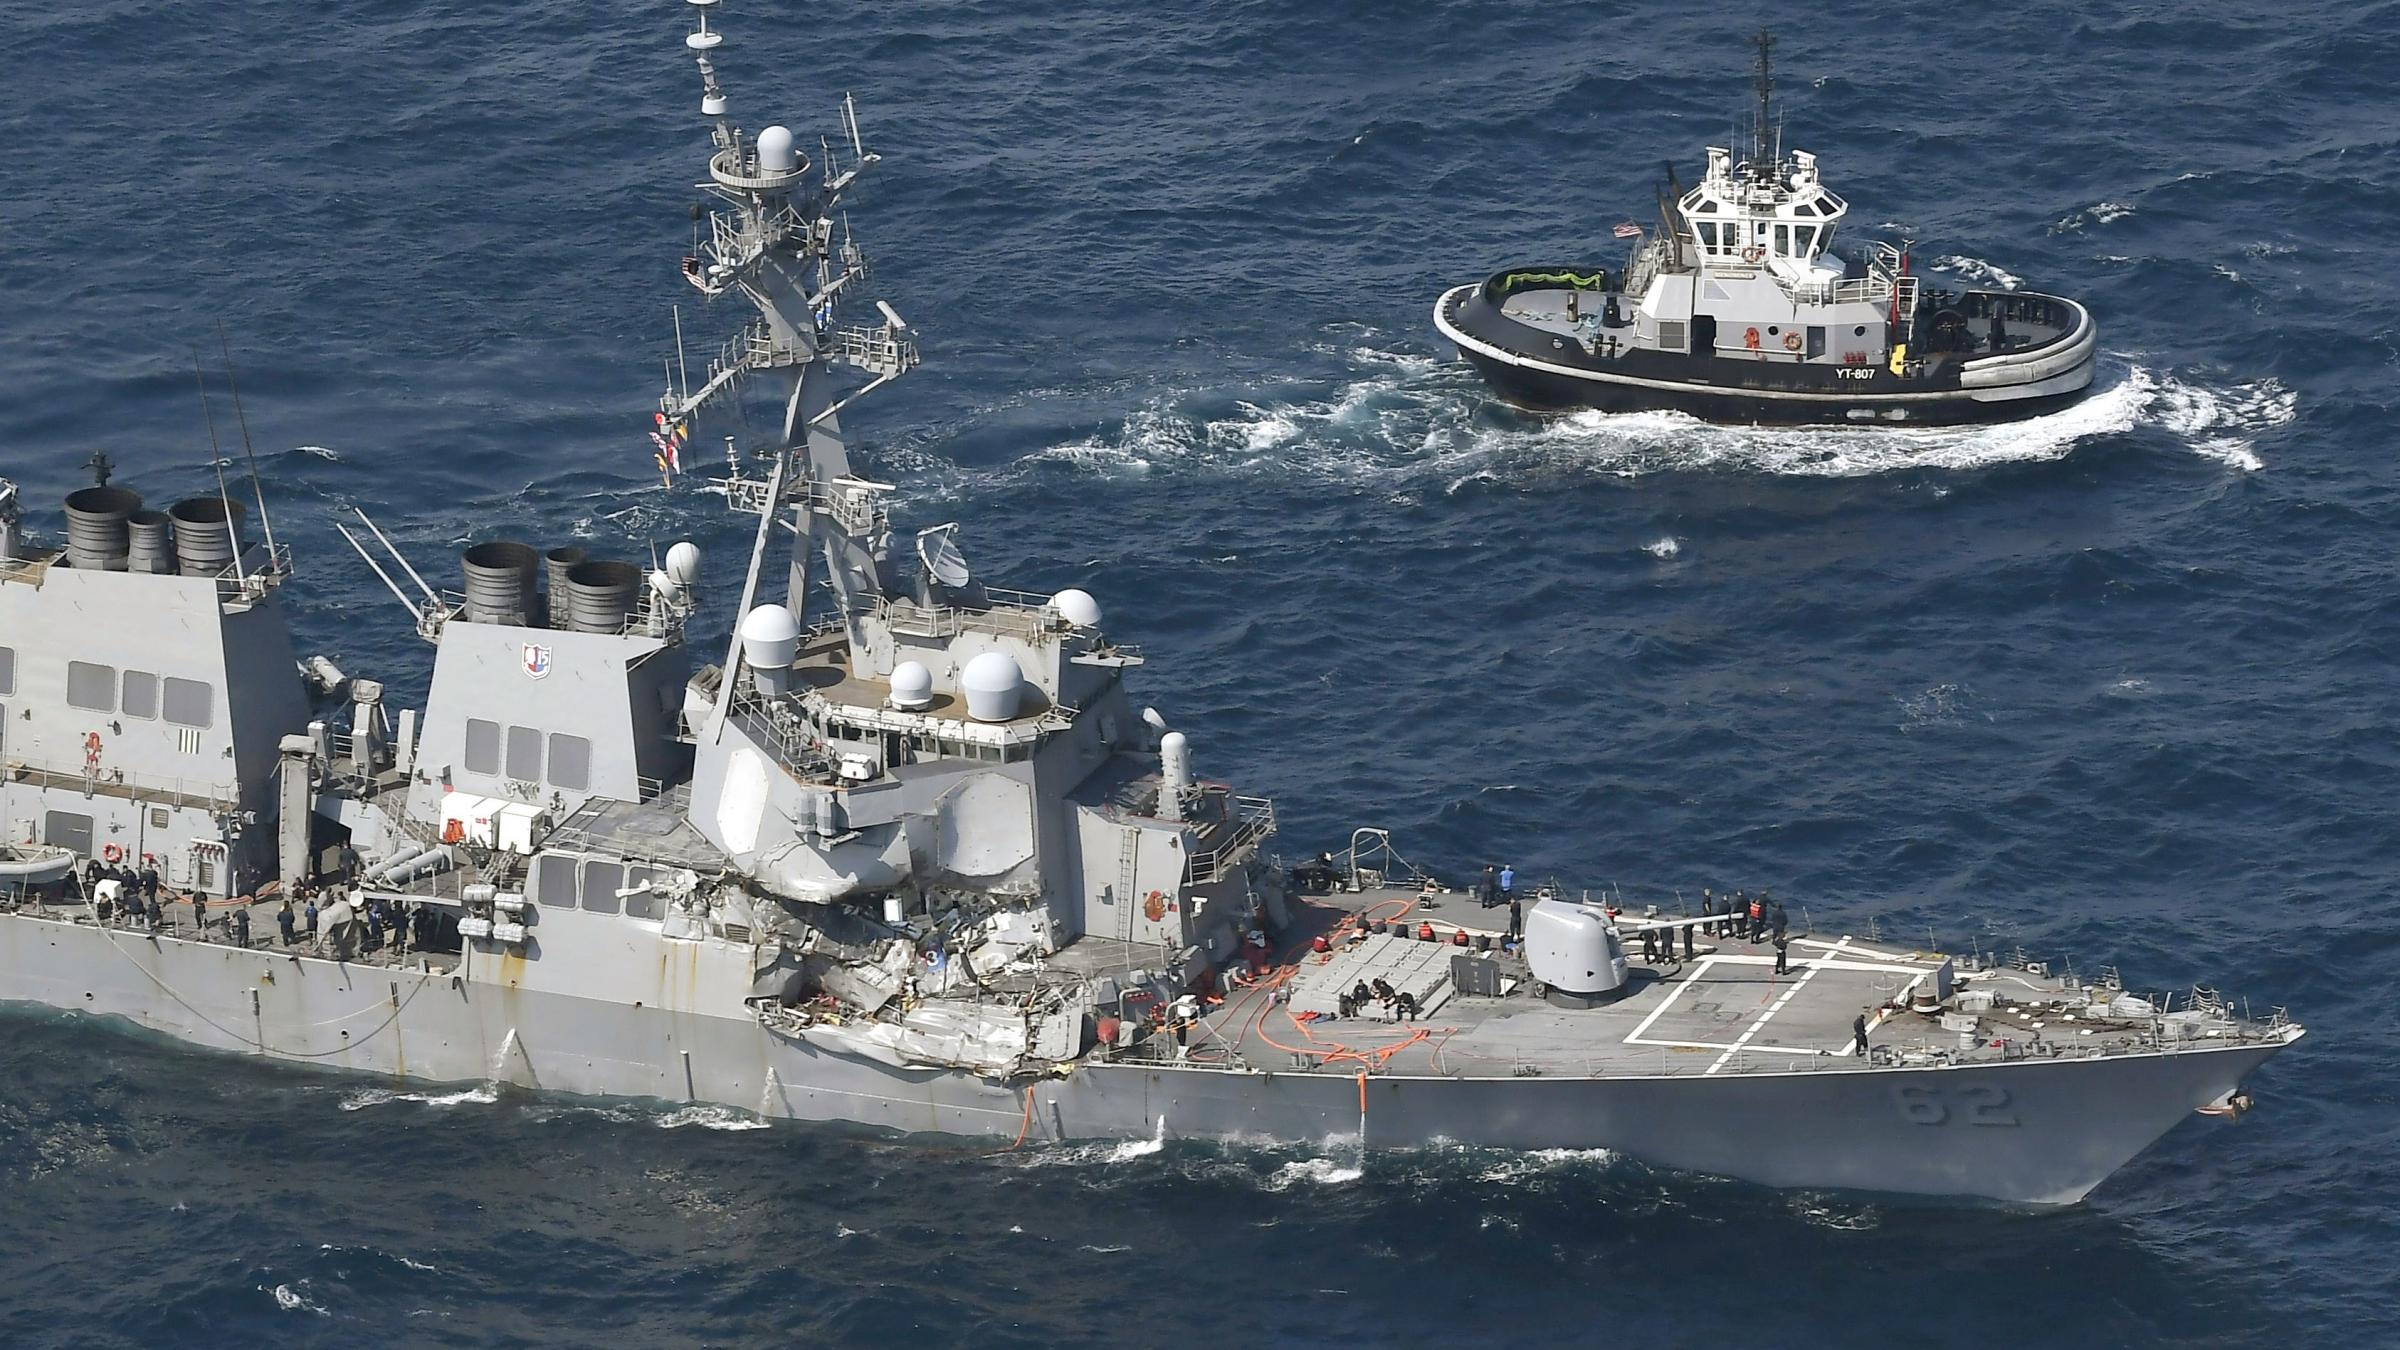 Search goes on for seven USA sailors after collision off Japan